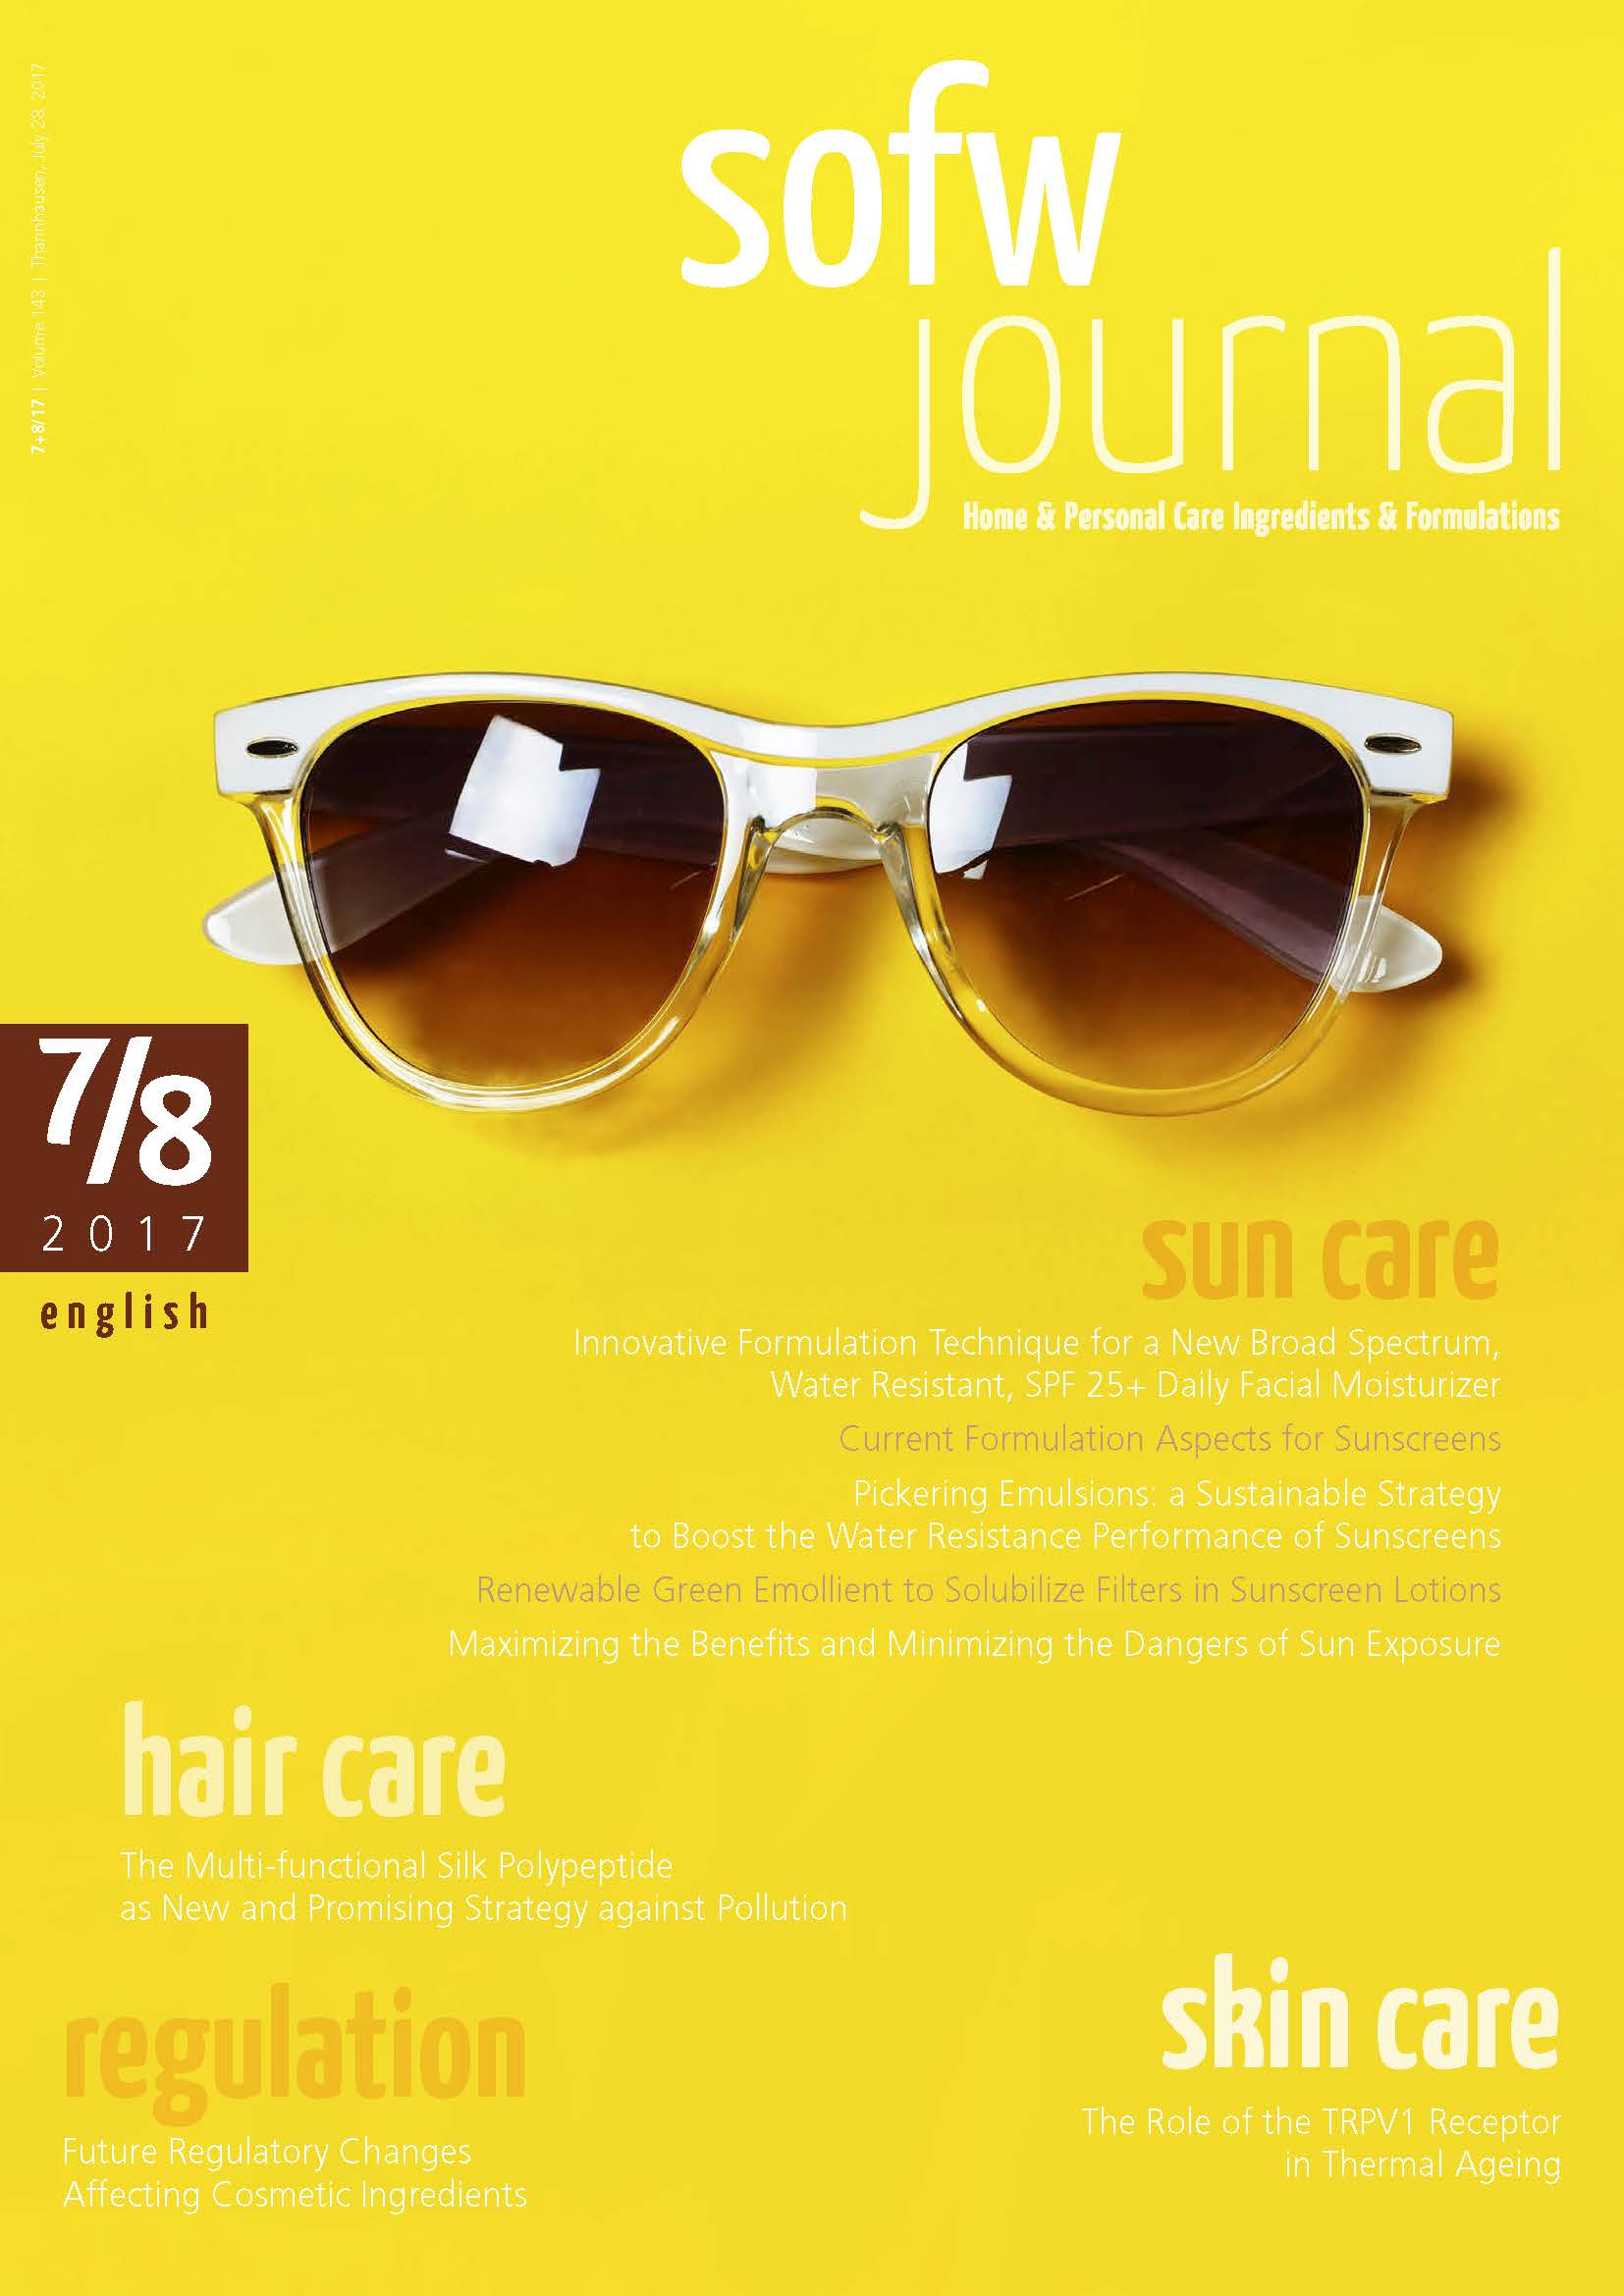 sofwjournal_en_2017_07_cover